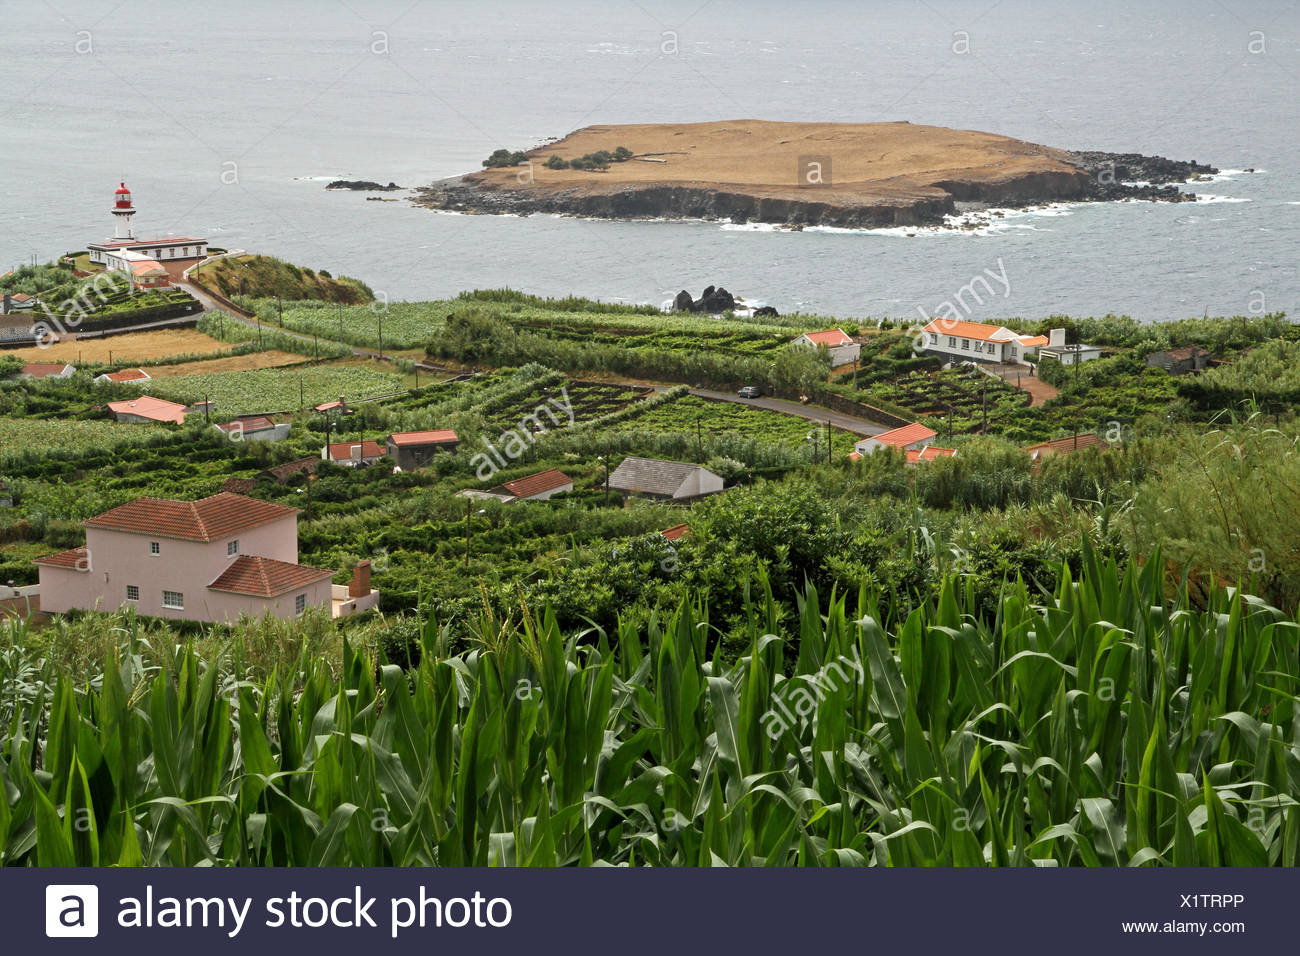 view towards Topo-point (with lighthouse) and the island of Topo at the eastern tip of Sao Jorge - Stock Image